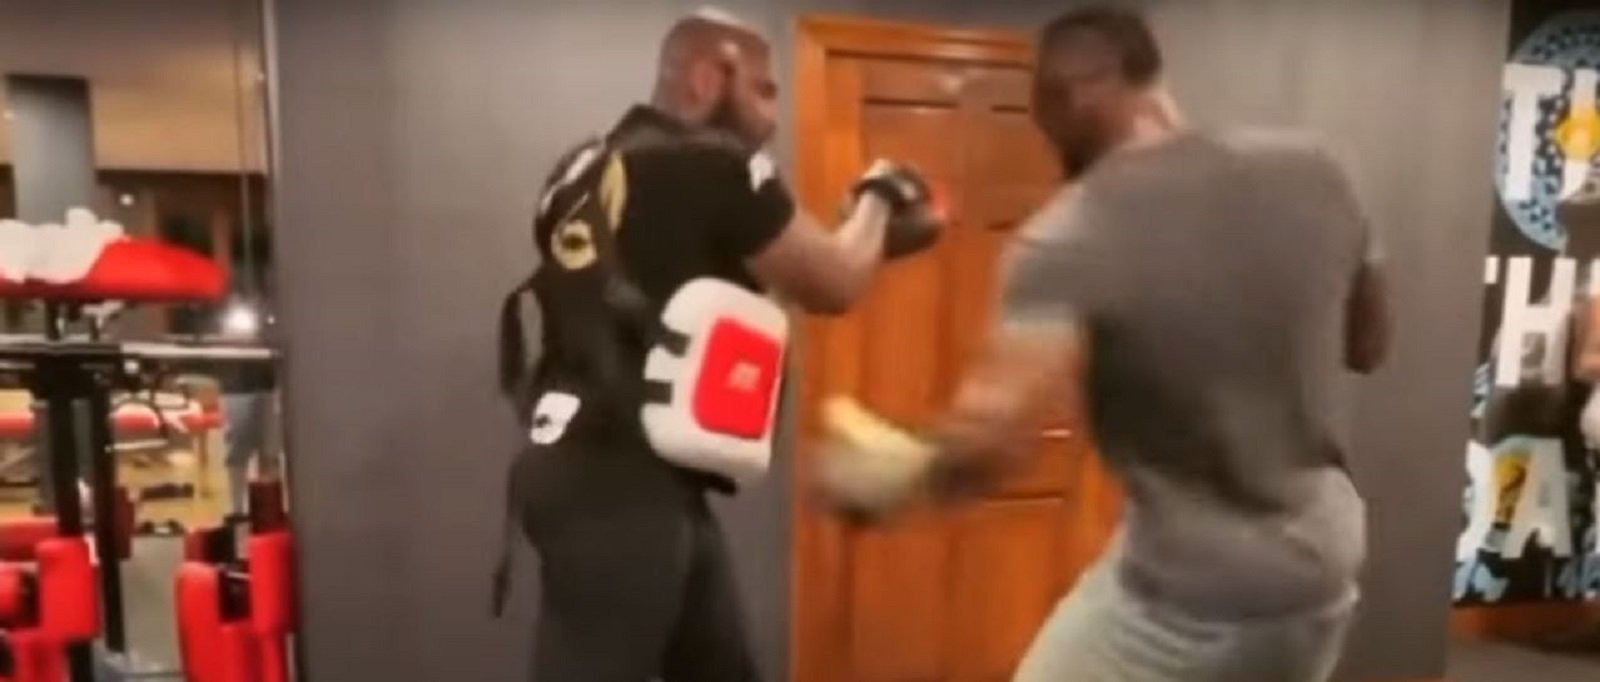 Deontay Wilder Works On Vicious Left Hook To The Body